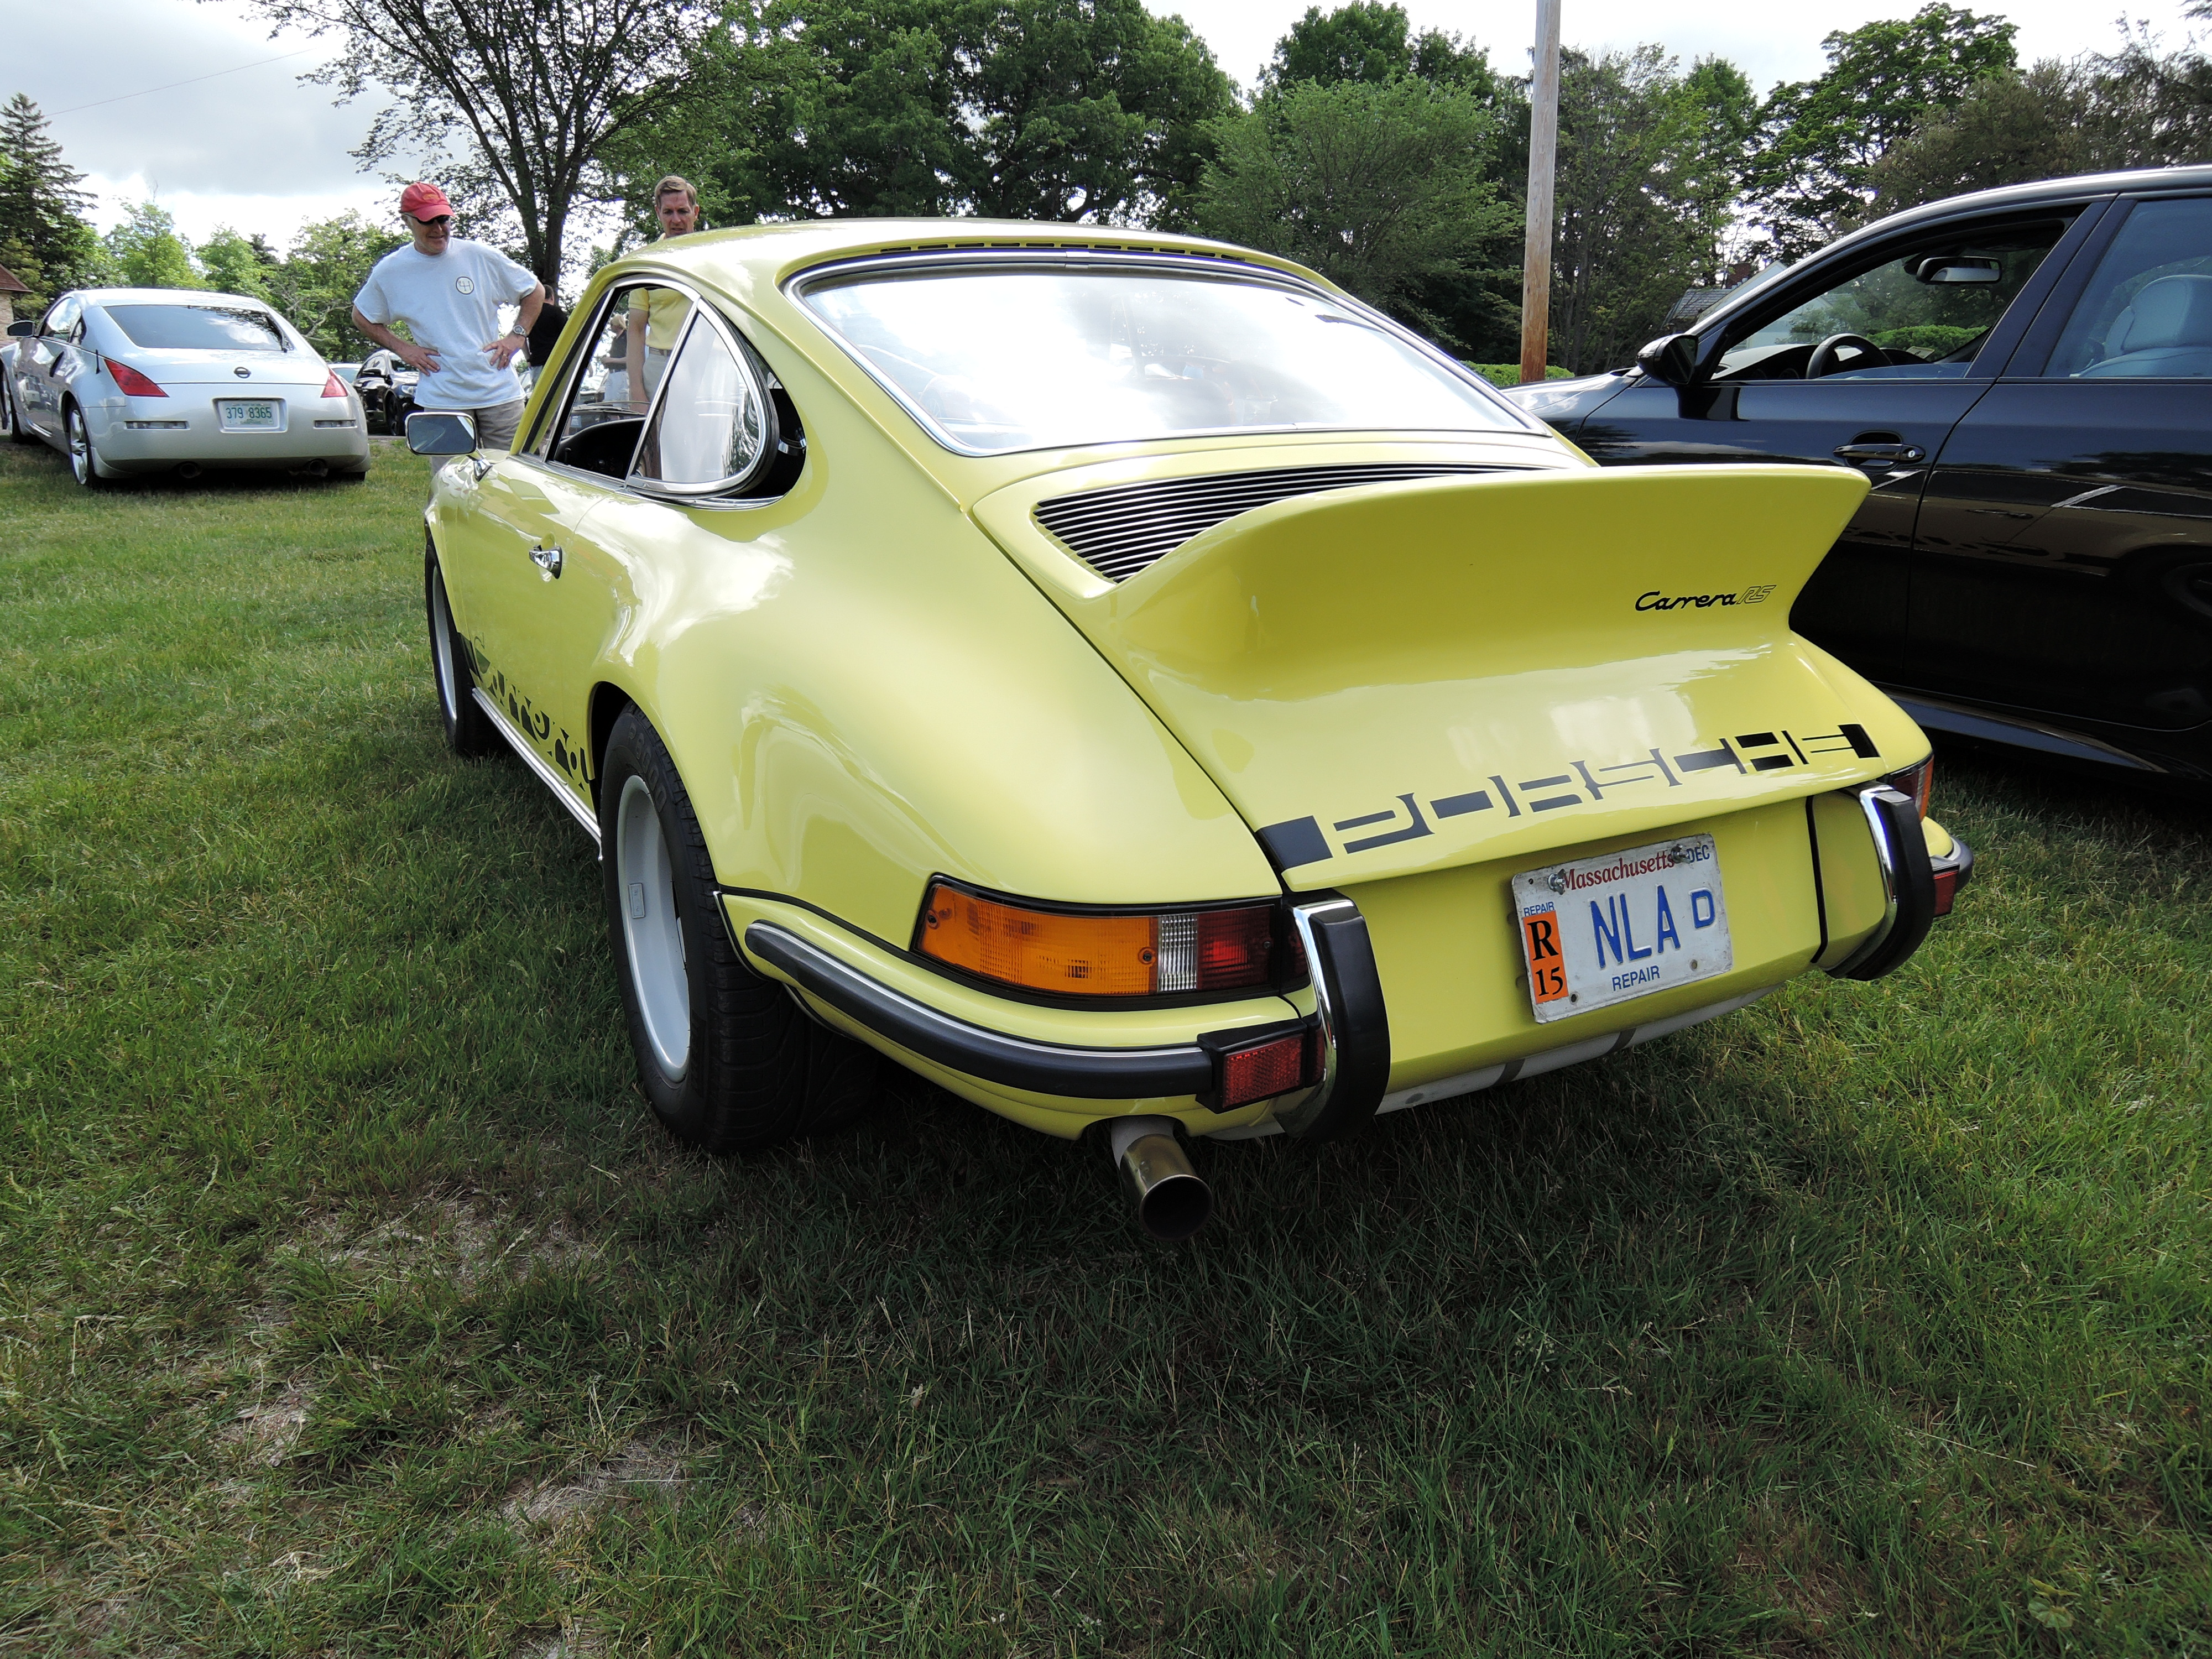 yellow porsche 911 Carrera RS - cars and coffee car show at larz Anderson museum of transportation